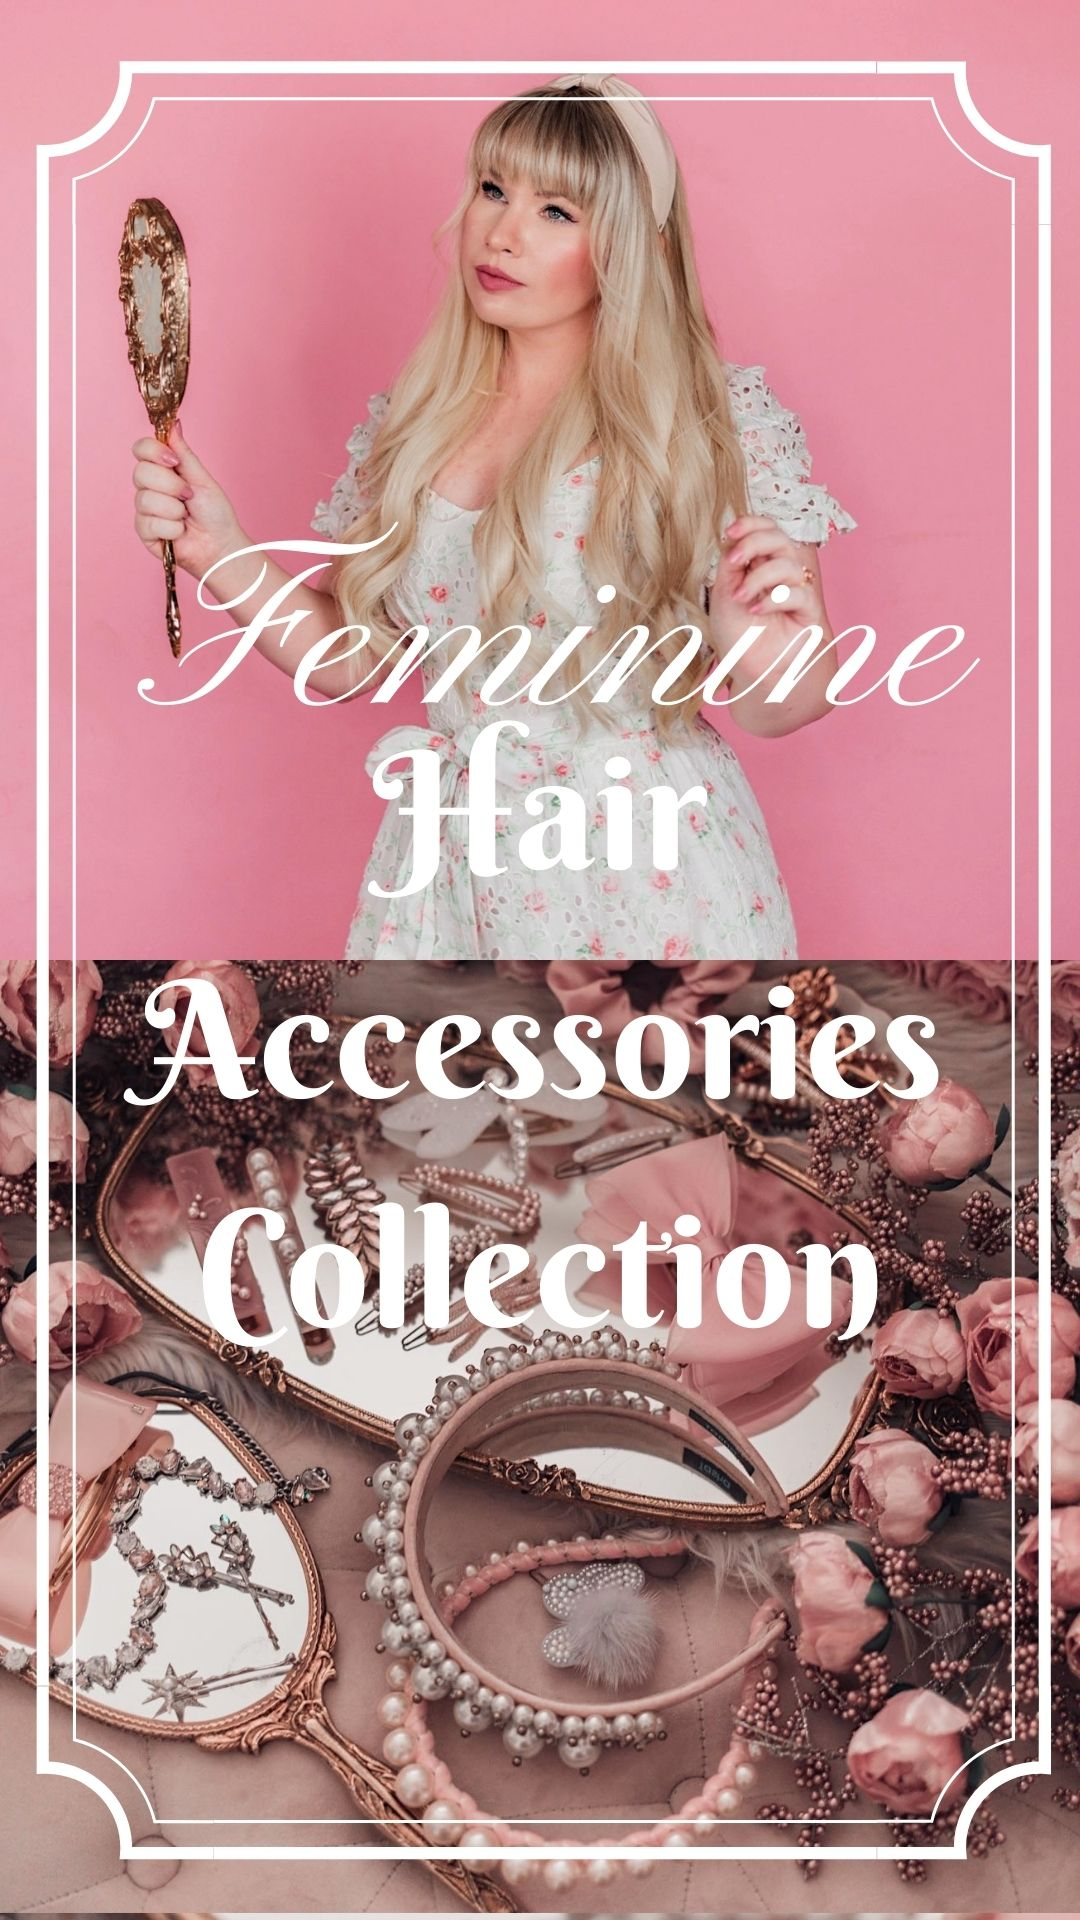 Feminine Fashion Blogger Elizabeth Hugen of Lizzie in Lace shares her feminine hair accessories collection